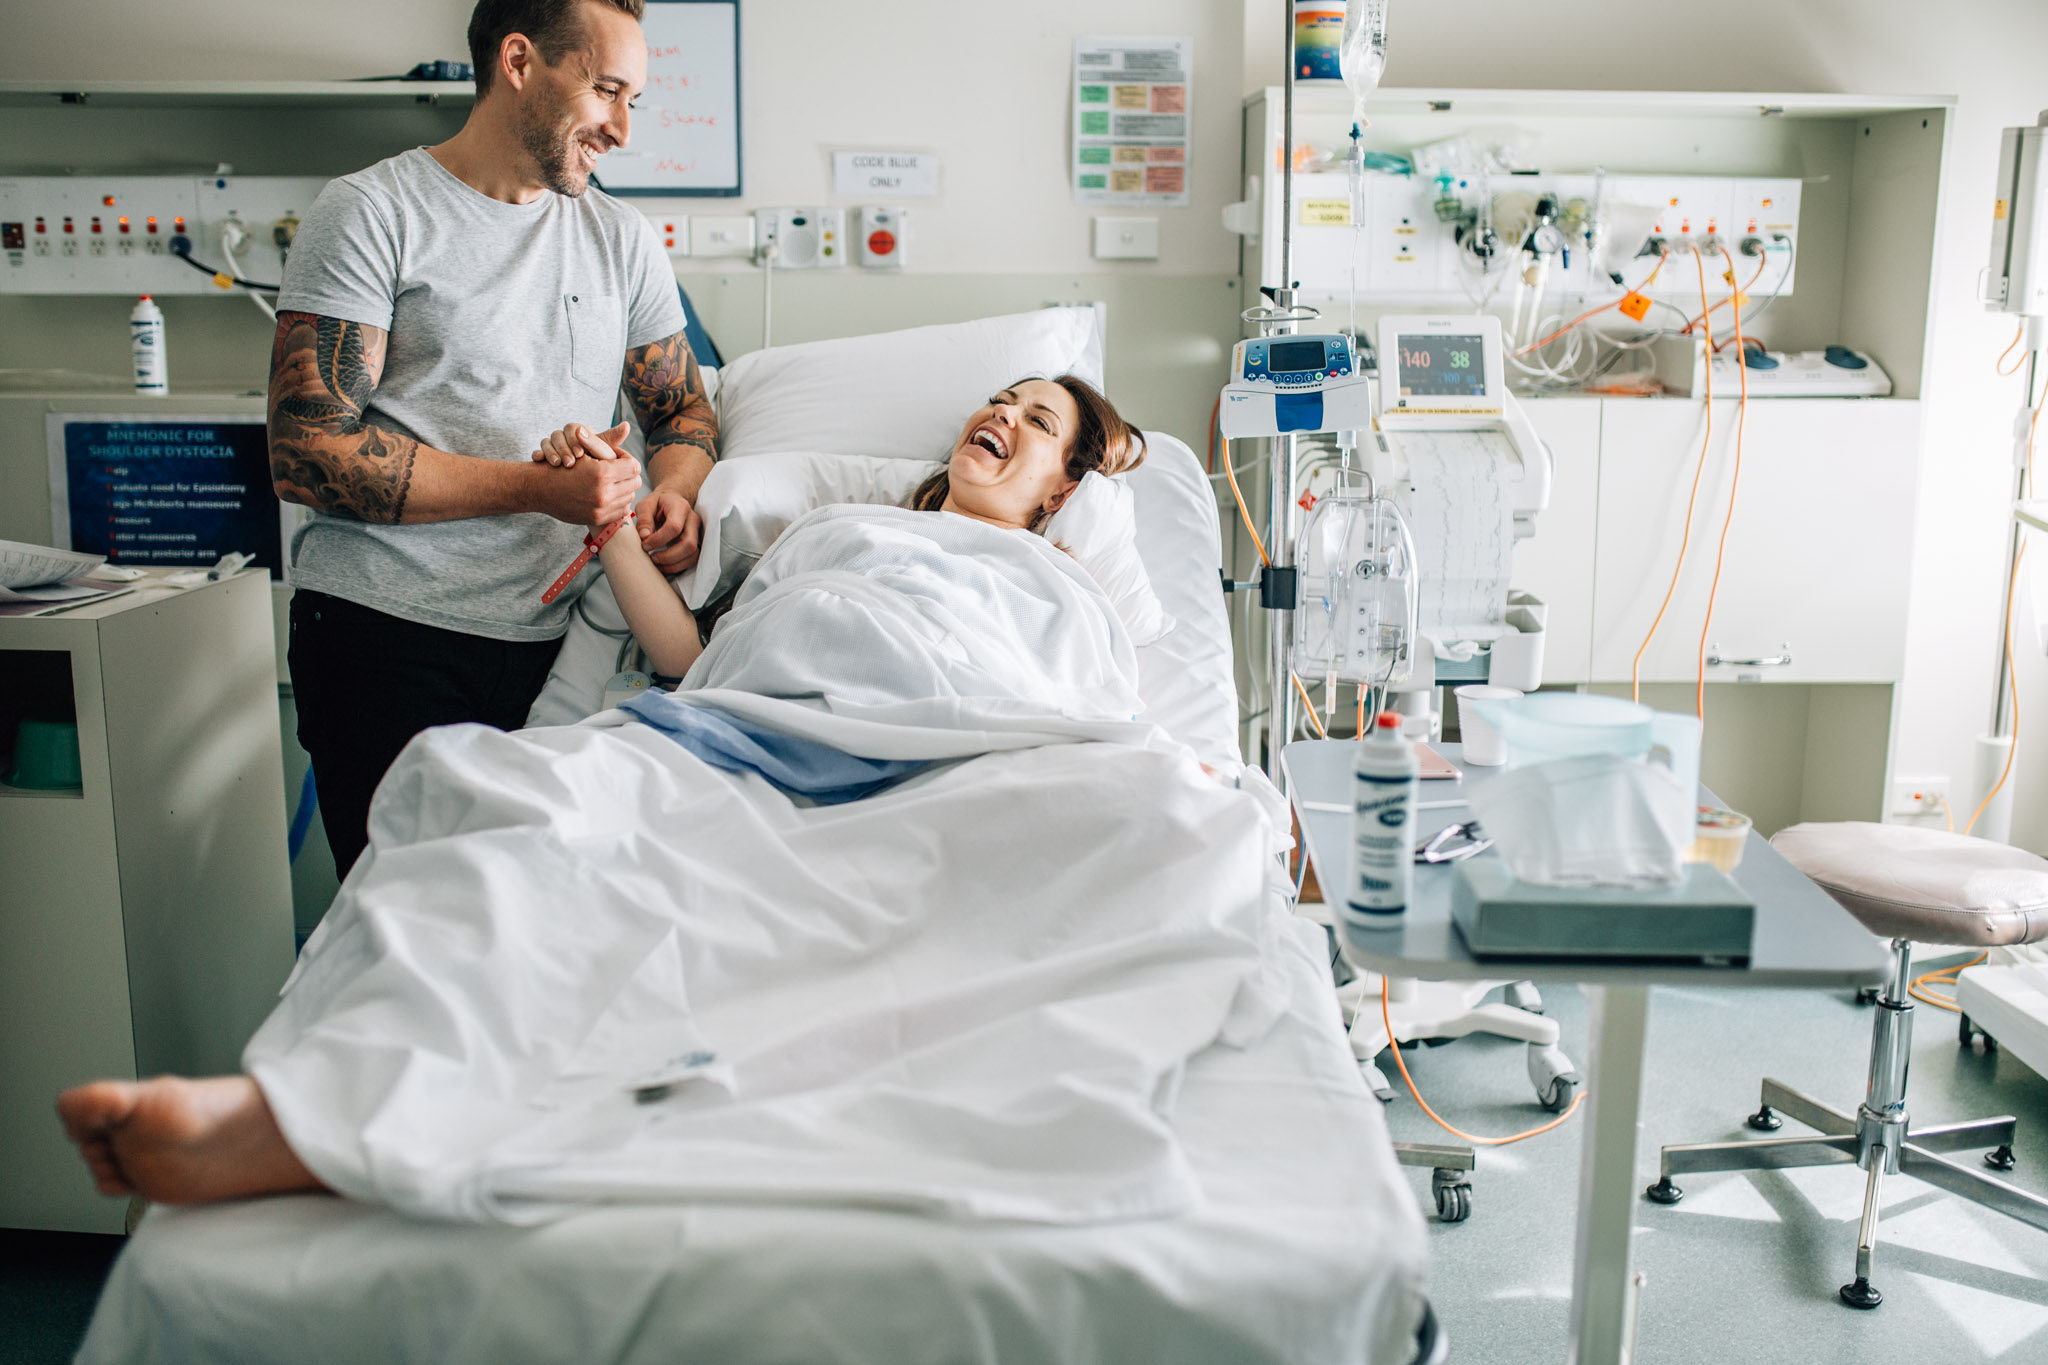 woman and man laughing over hospital bed (1 of 1).jpg